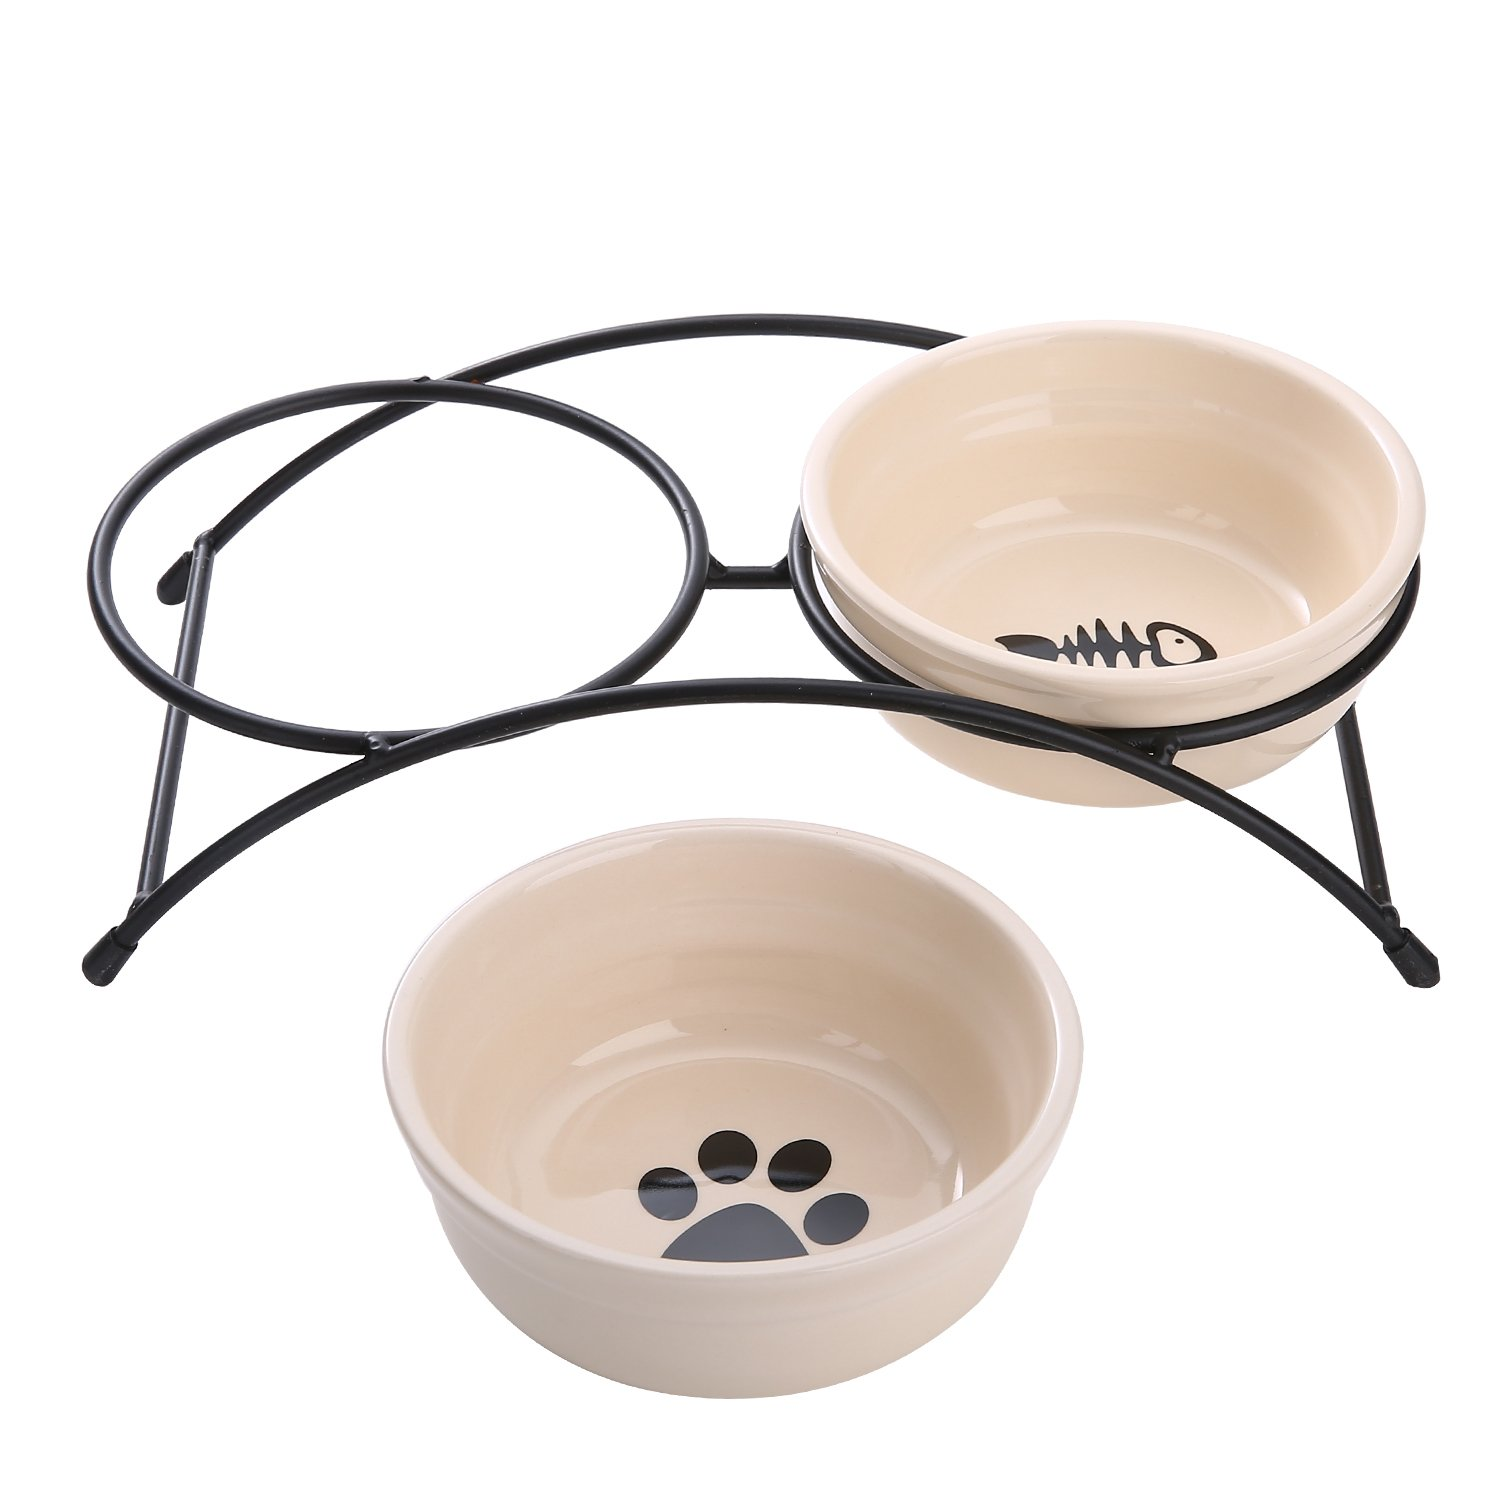 Pet Bowl with Stand Ceramic -FUBARBAR Elevated Raised Pet Food Water Feeding Serving Safe Double Bowls Tray Feeder with Iron Stand for Dogs and Cats Outdoor Travel